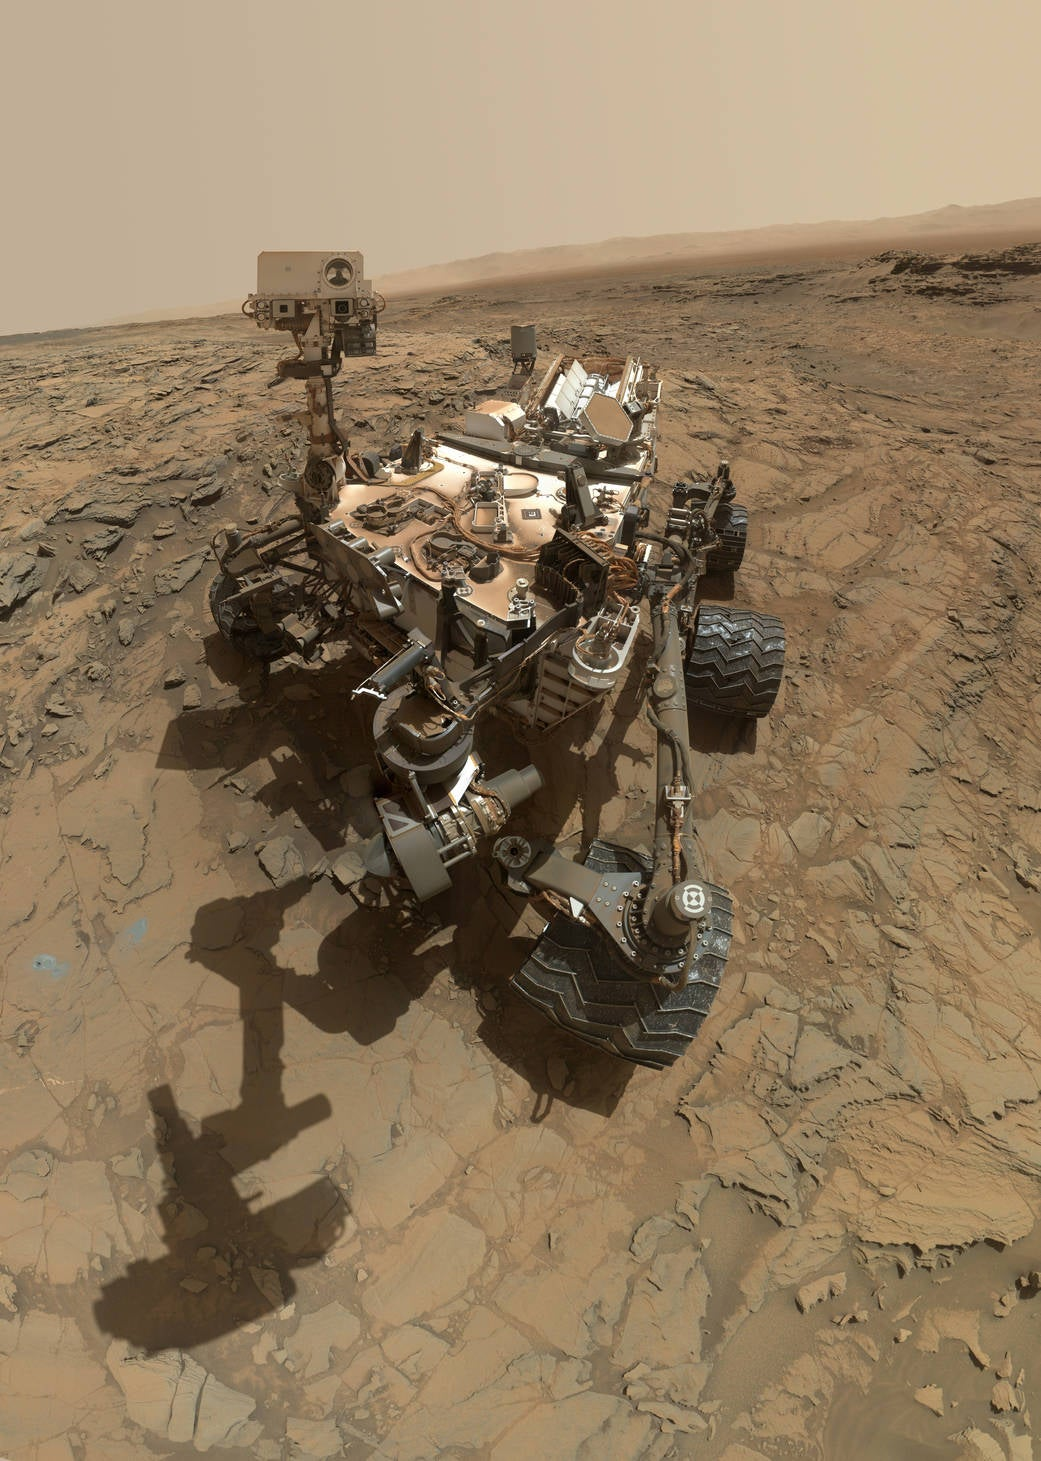 Curiosity Rover takes a self portrait